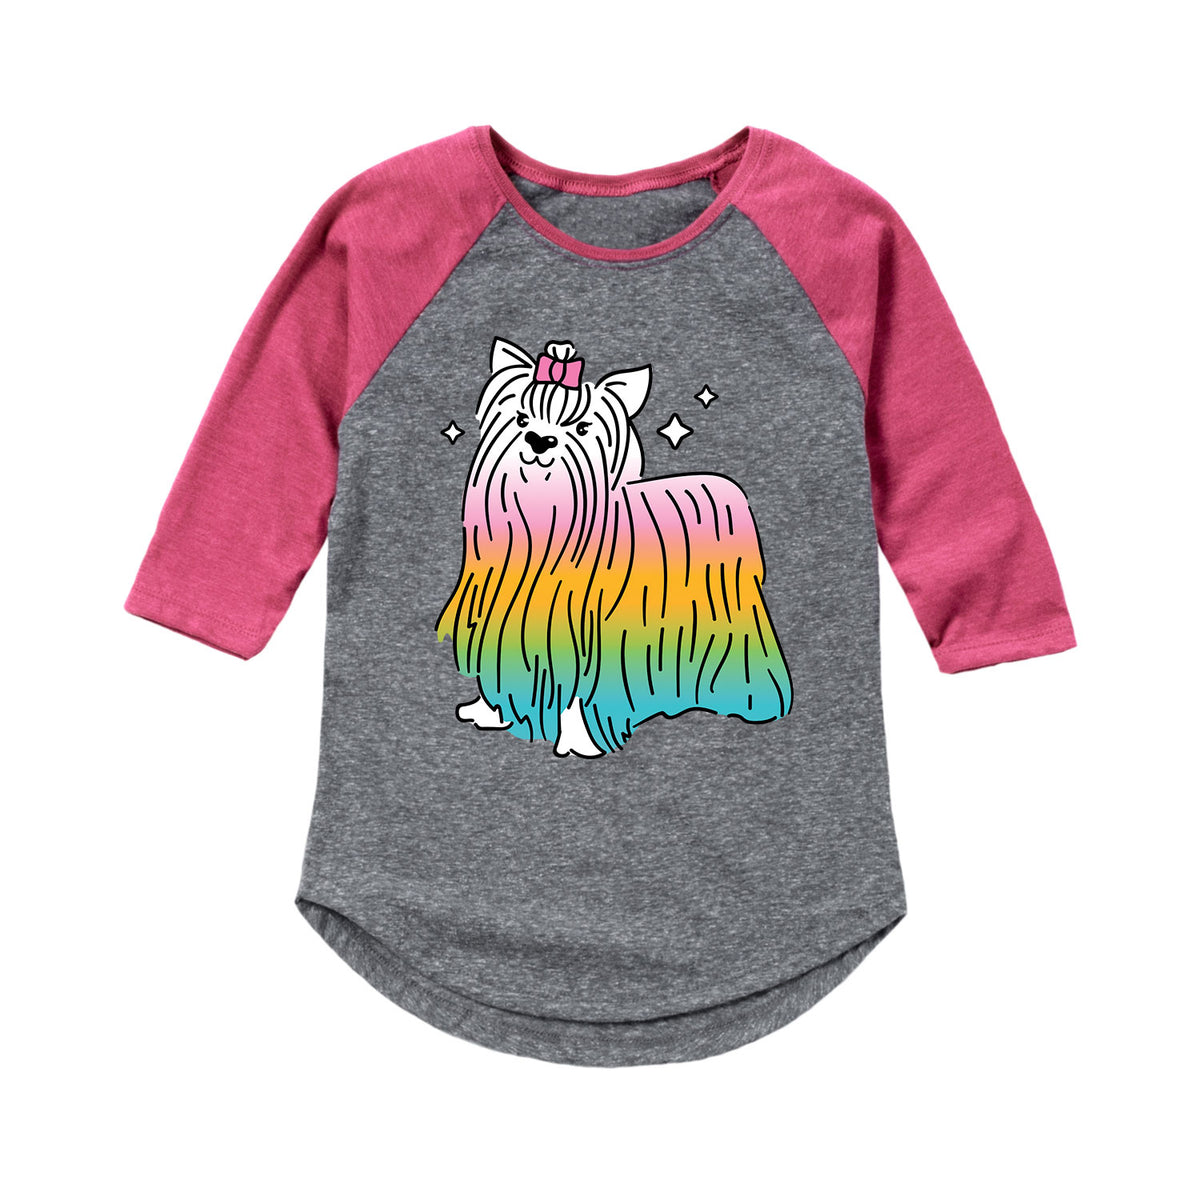 Rainbow Yorkie - Youth Girl Raglan